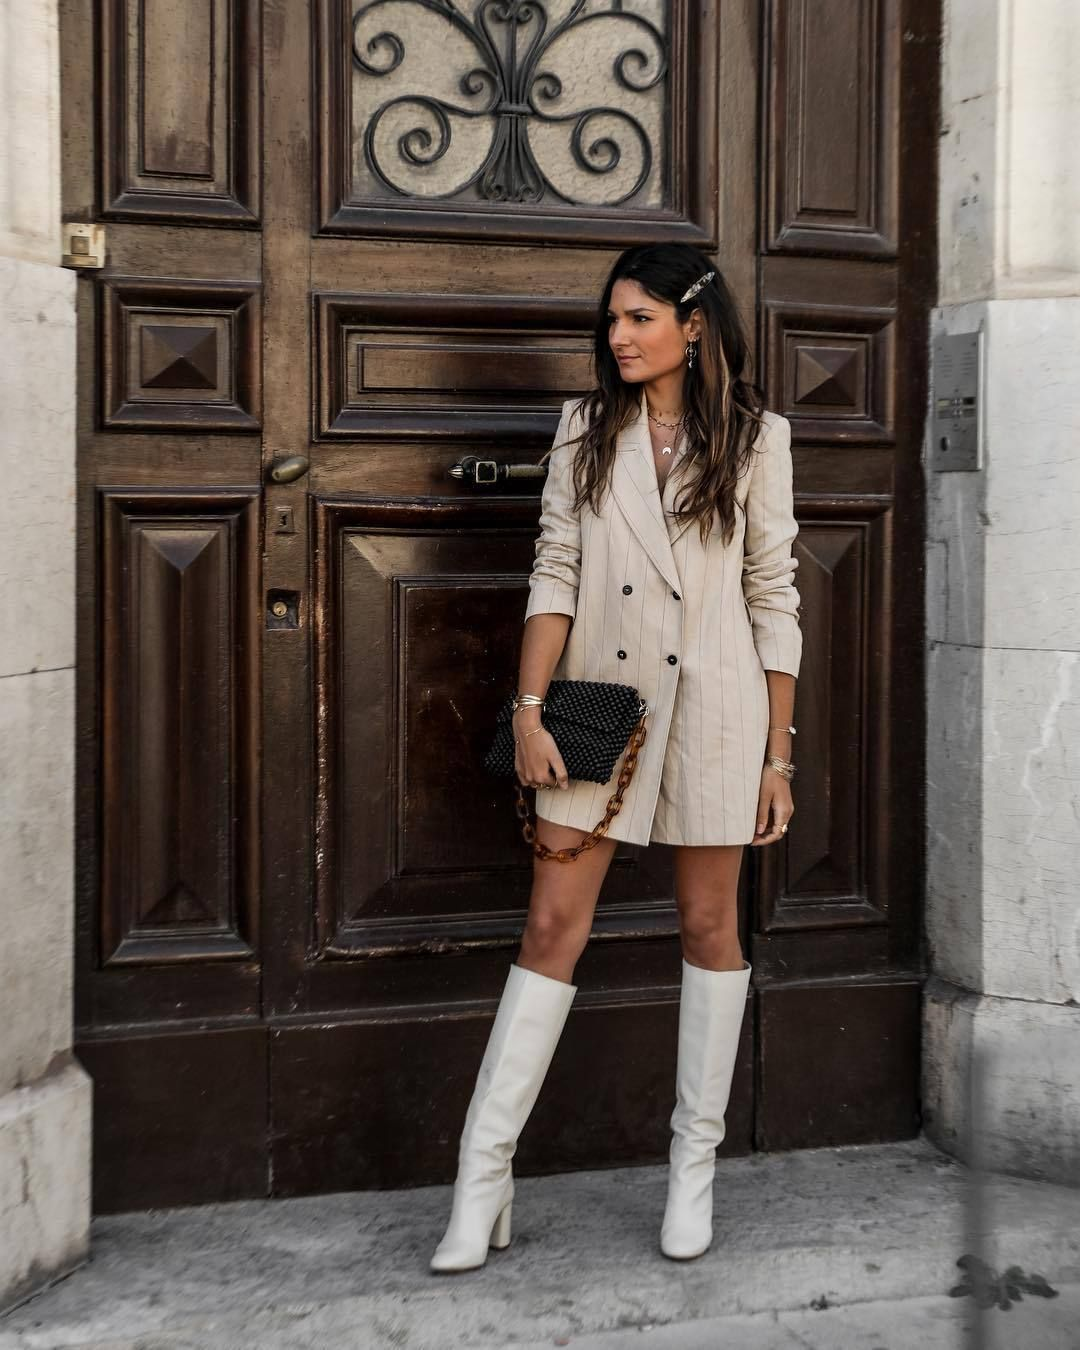 Get The Dress For 60 At Missguided Eu Wheretoget Blazer Dress Outfits White Boots Outfit Fashion [ 1350 x 1080 Pixel ]